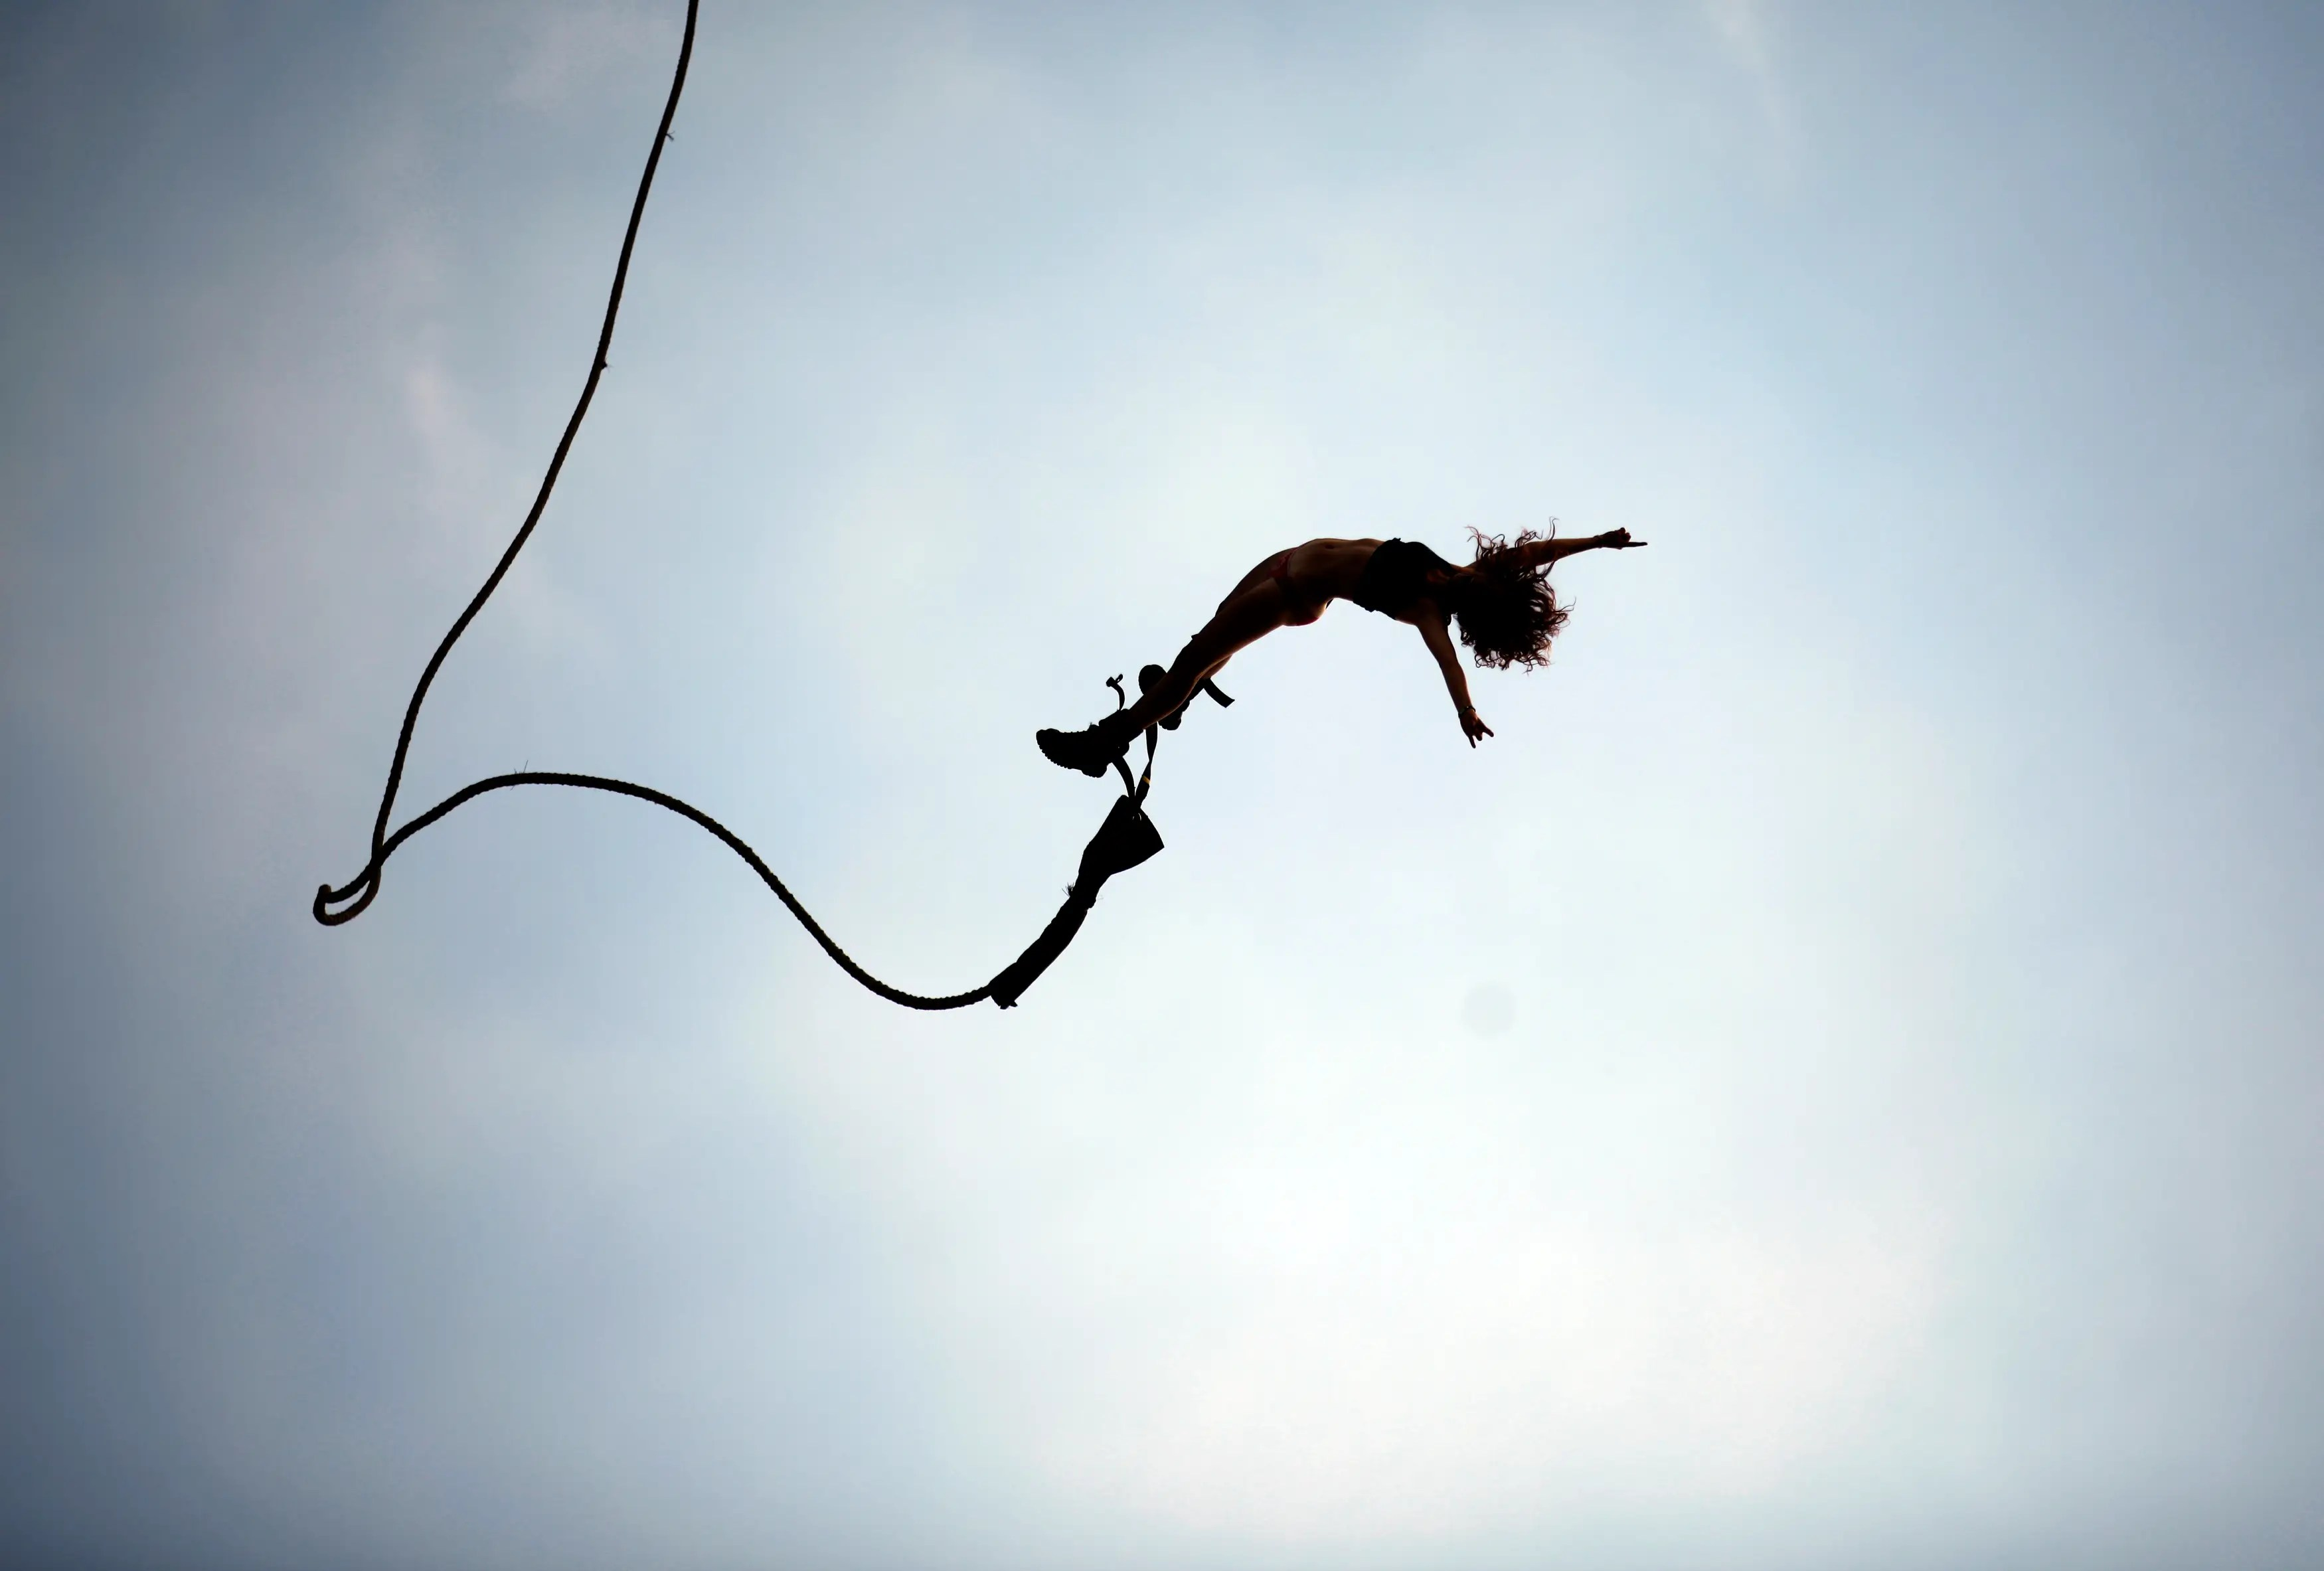 A reveller enjoys a bungee jump during the 17th Woodstock Festival in Kostrzyn-upon-Odra River, close to the Polish and German border.